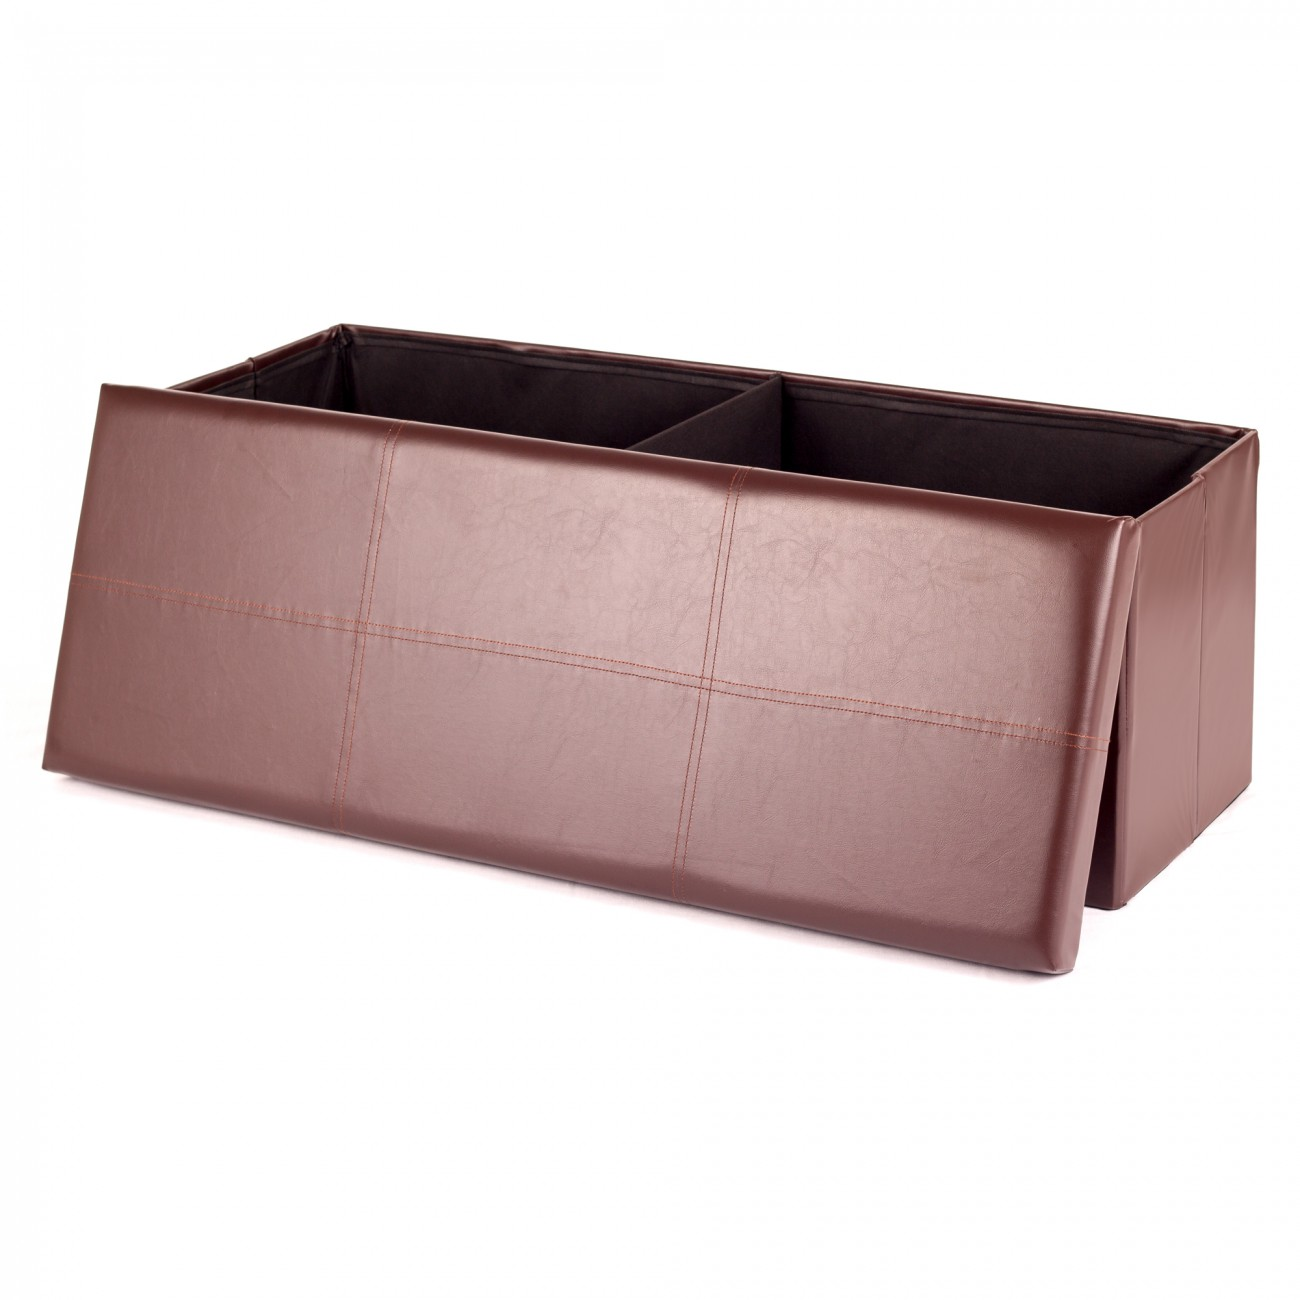 Turbo MY SIT Foldable Ottoman Storage Box Synthetic Leather 110 x 40 x  MA69